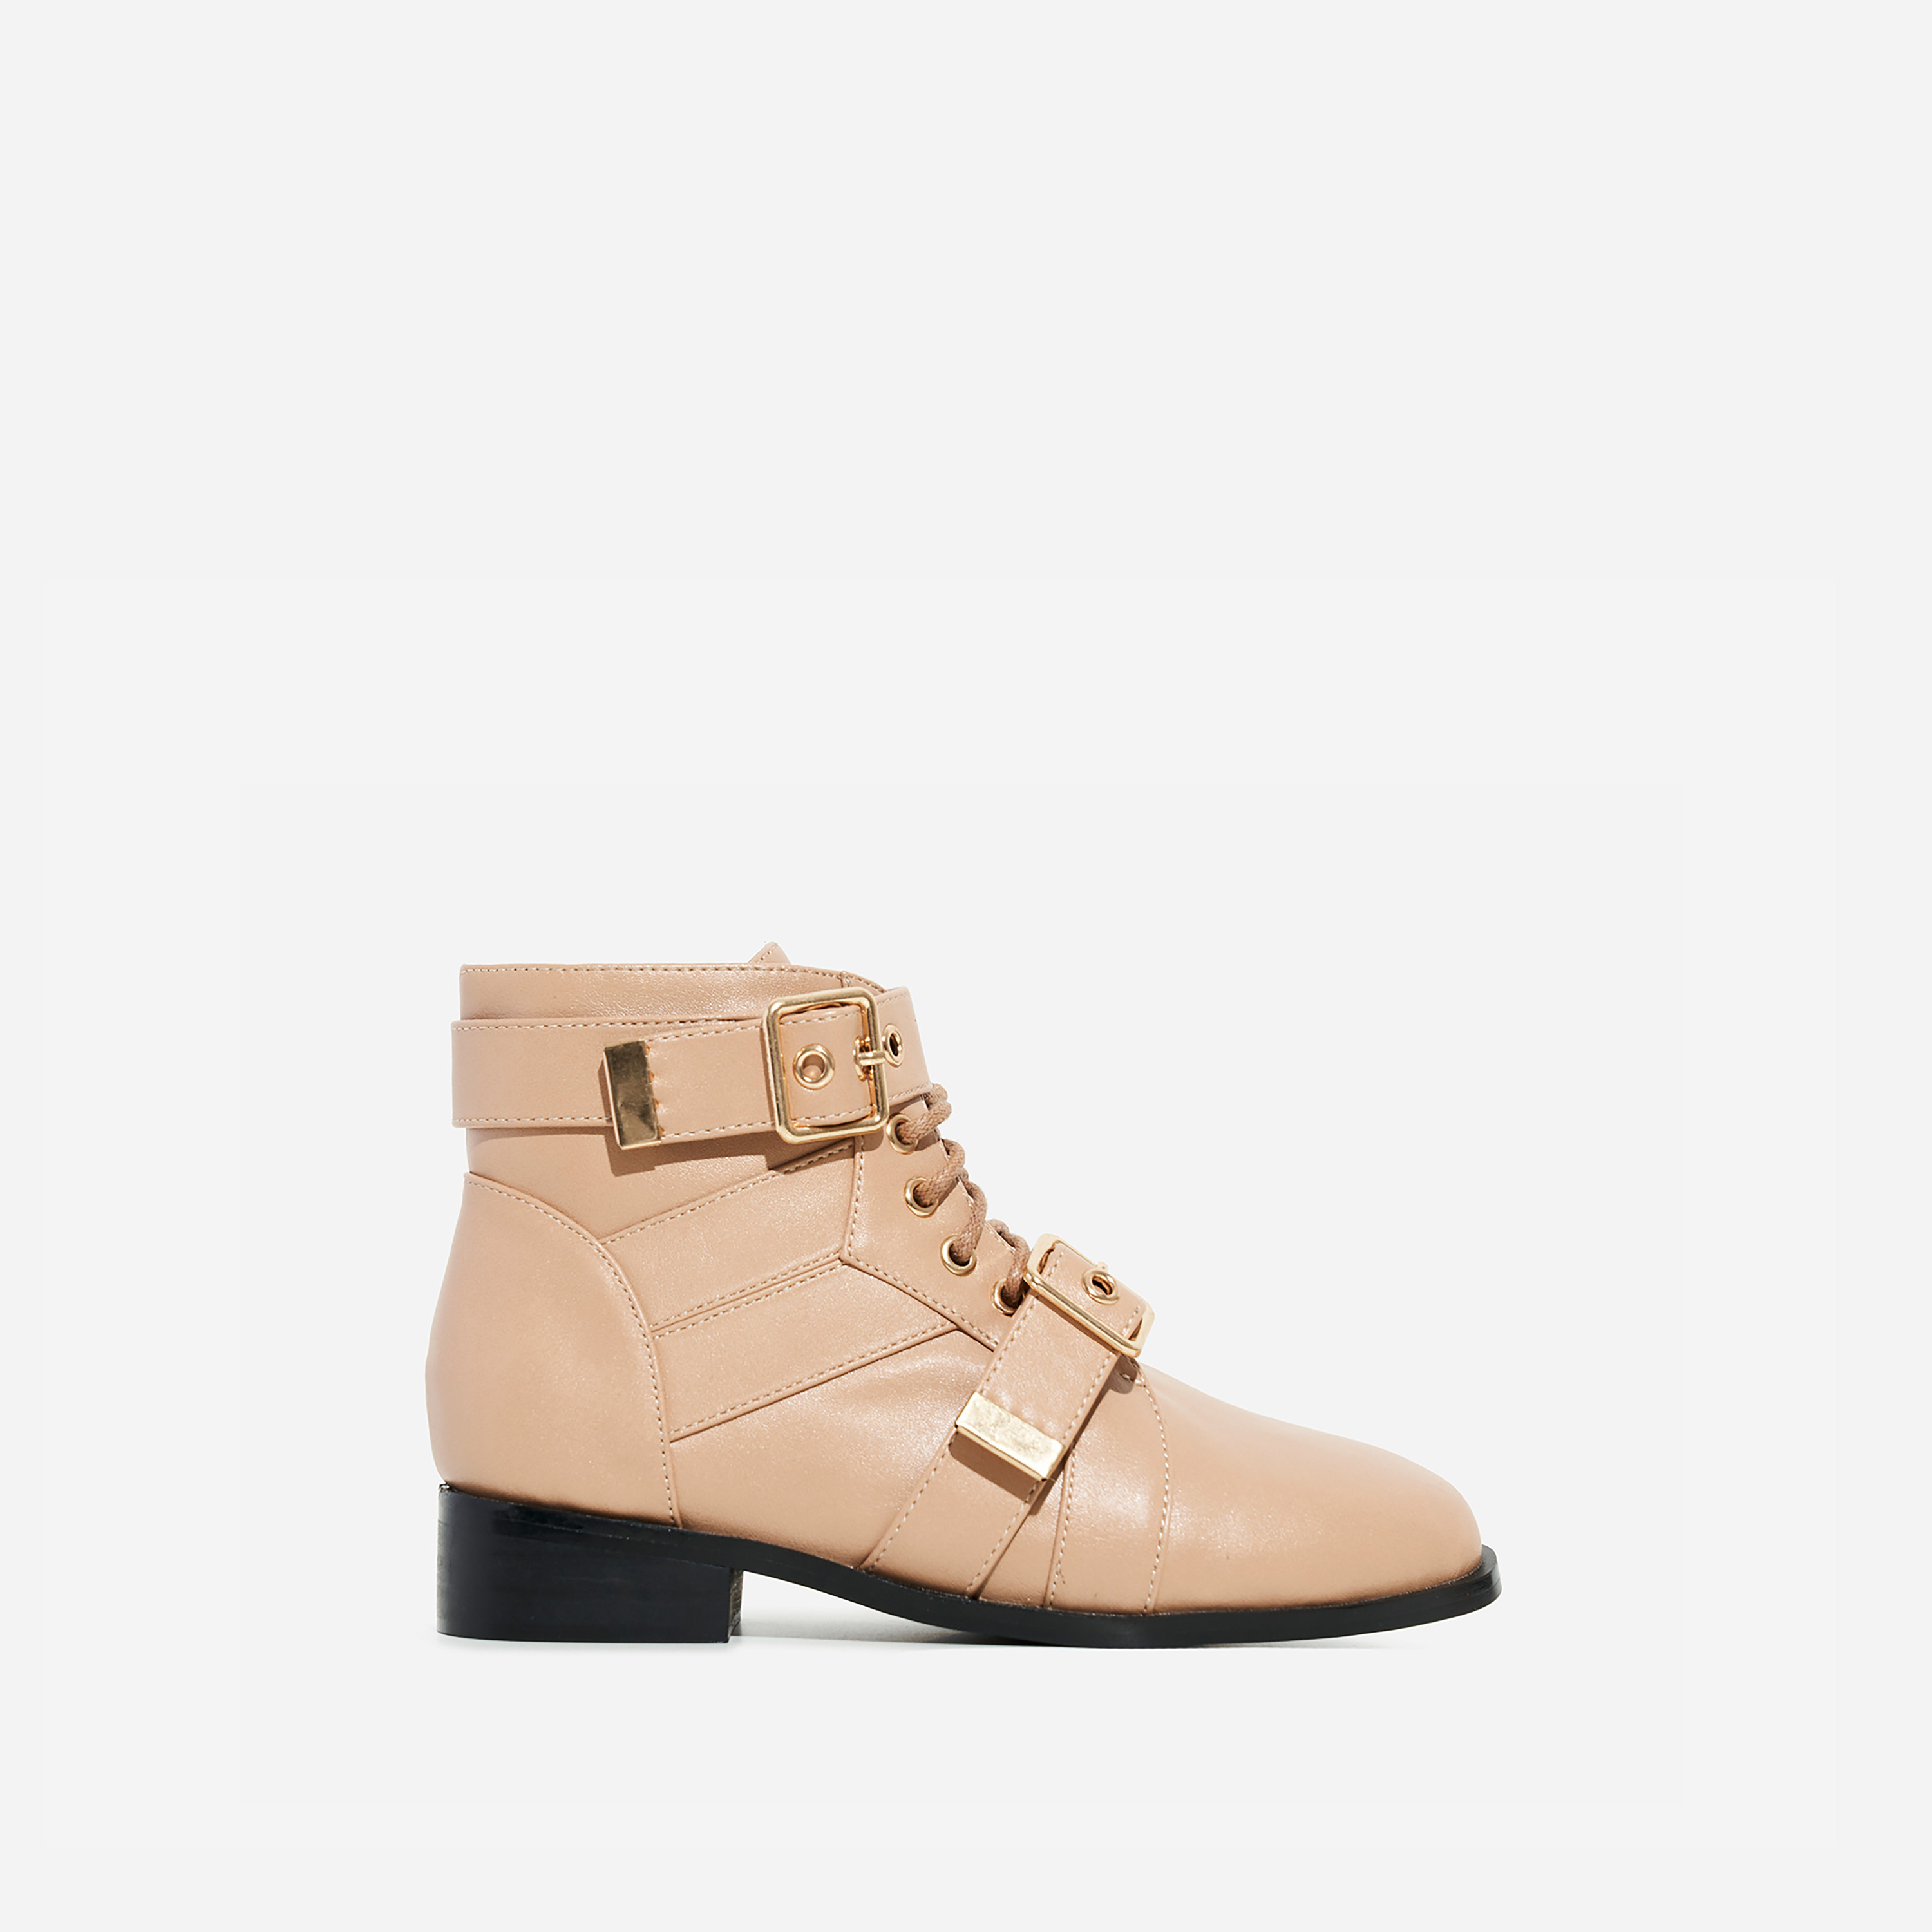 Howdy Girl's Buckle Detail Lace Up Ankle Biker Boot In Nude Faux Leather